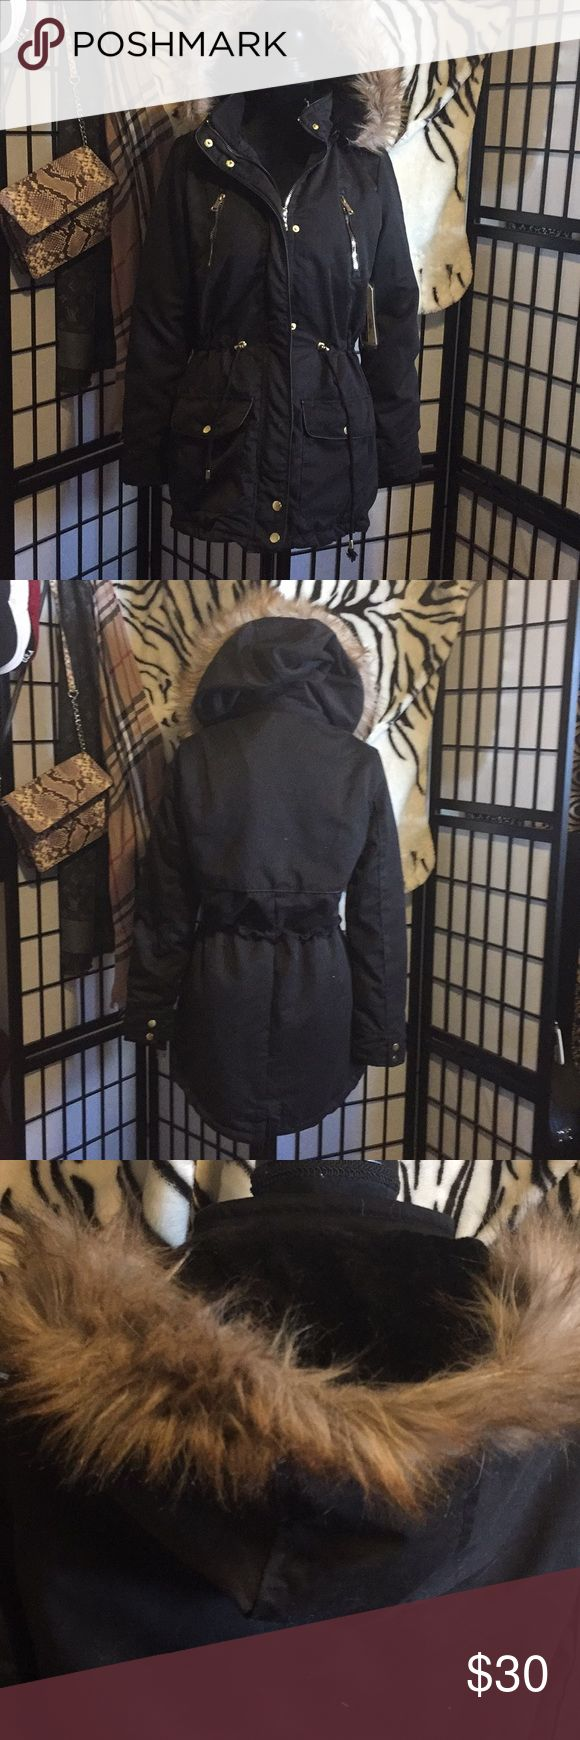 Amazing black fur hooded parka Brand new with tags black parka! This parka is perfect to keep you warm in any weather it has a fur lined hood and multiple pockets! The waste is adjustable with the drawstring and is the long style! Size medium royalty for me Jackets & Coats Trench Coats